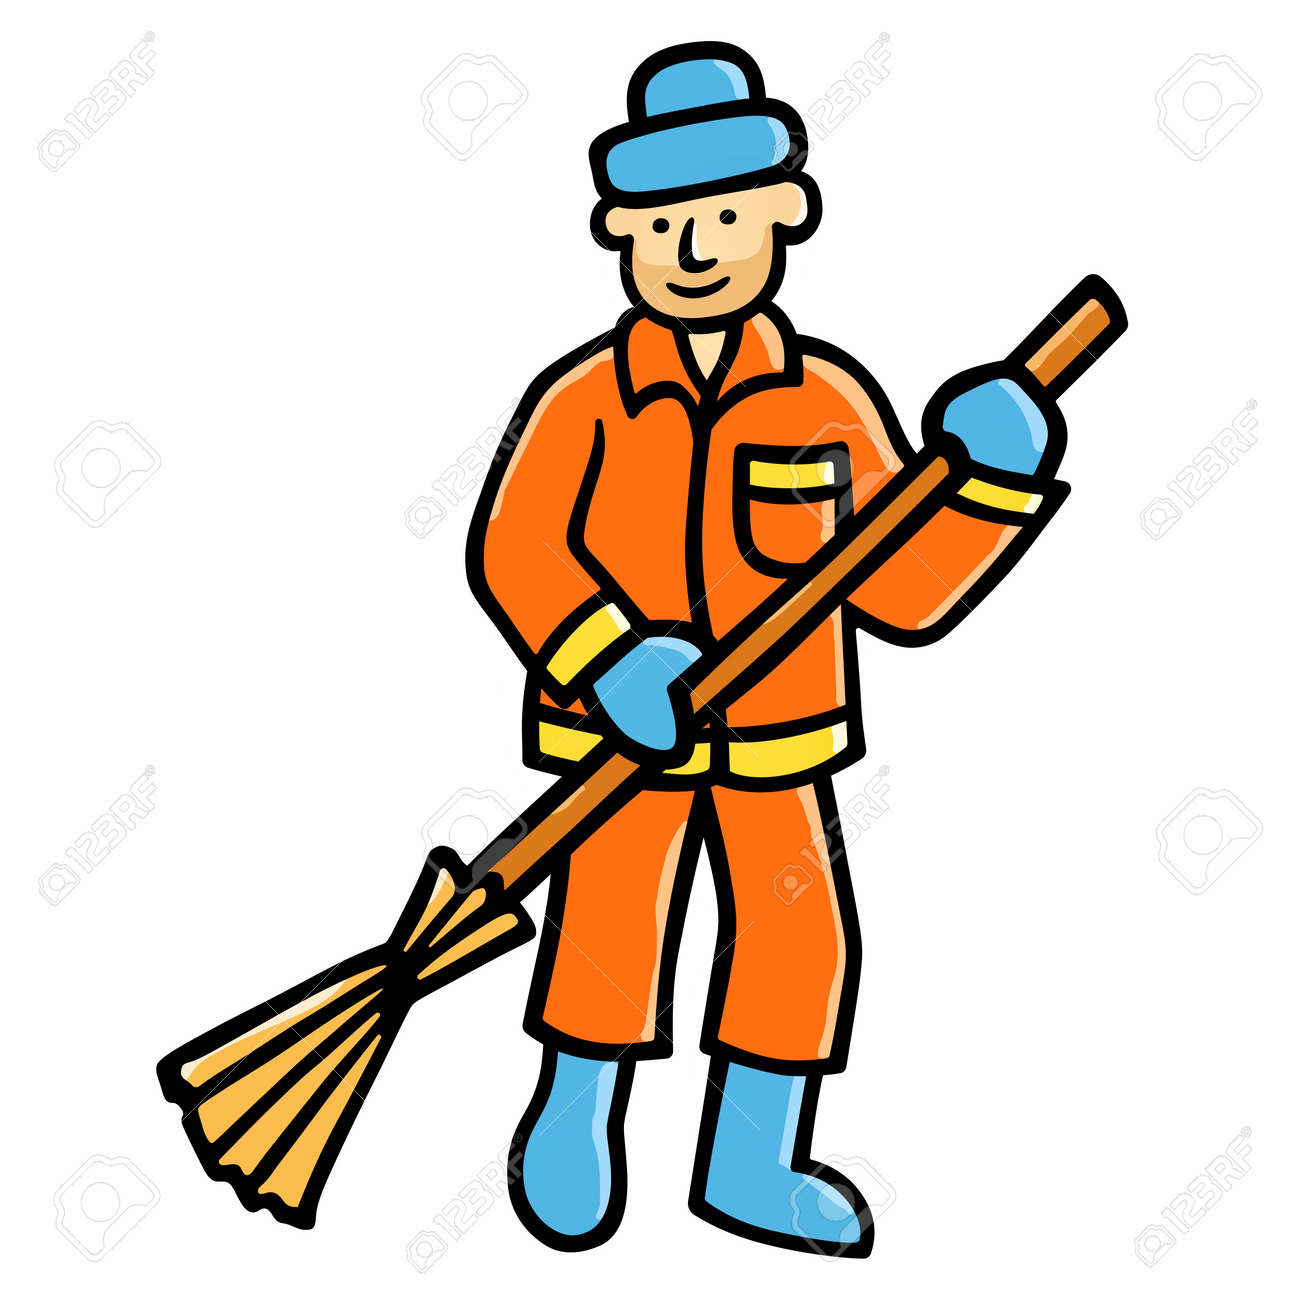 street cleaner royalty free cliparts vectors and stock rh 123rf com st patrick's clipart sesame street clipart